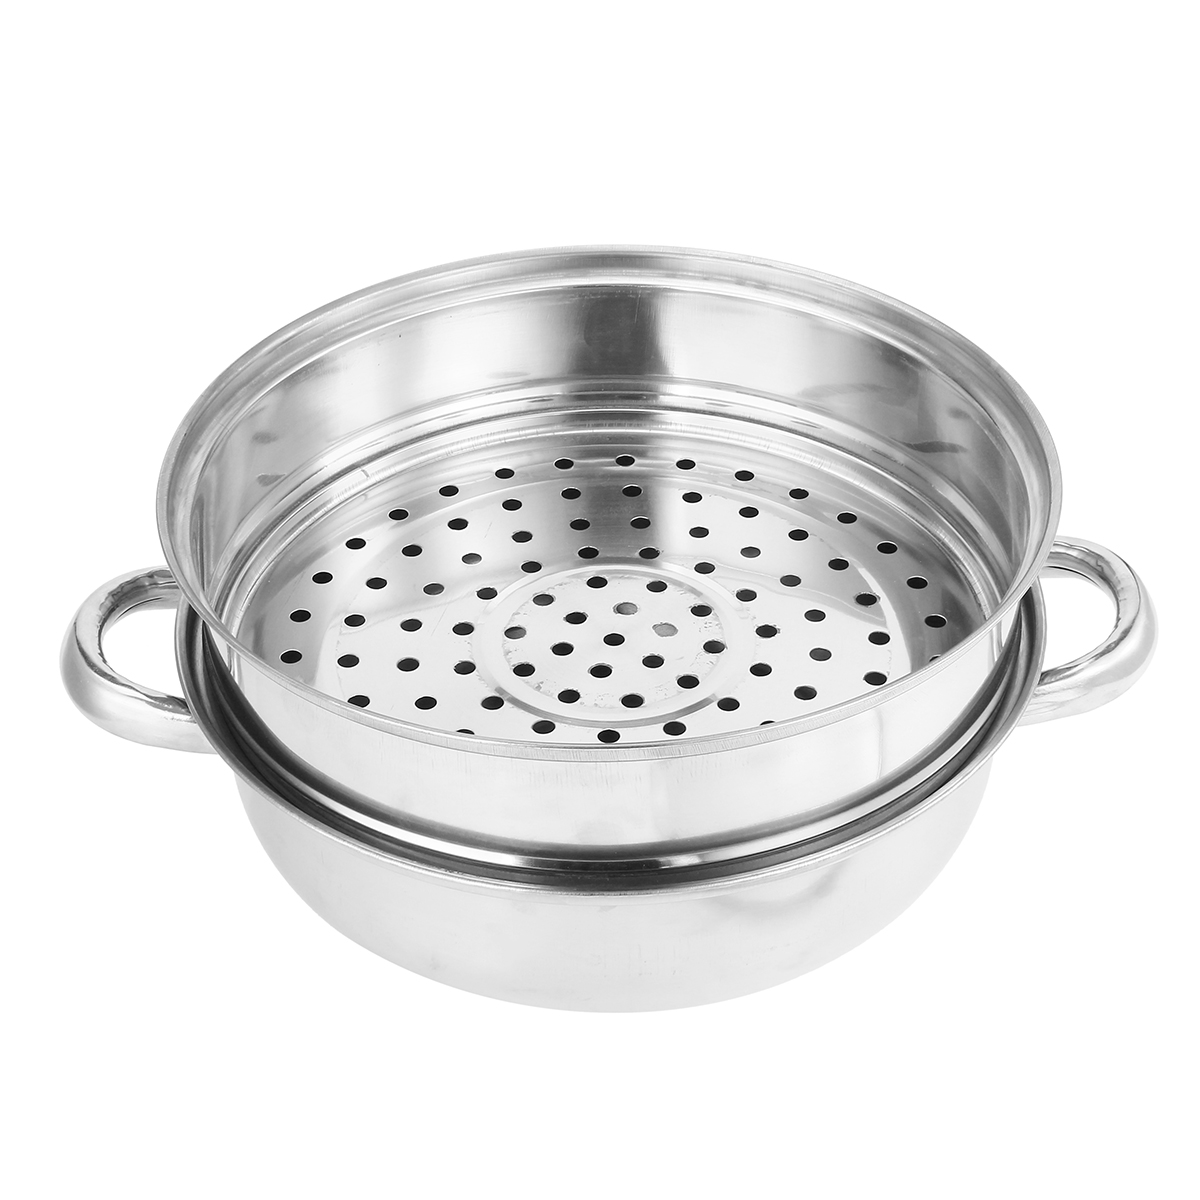 2 Tier 27.5cm Stainless Steel Food Steamer Pot Pan Vegetable Cooker Glass Lid